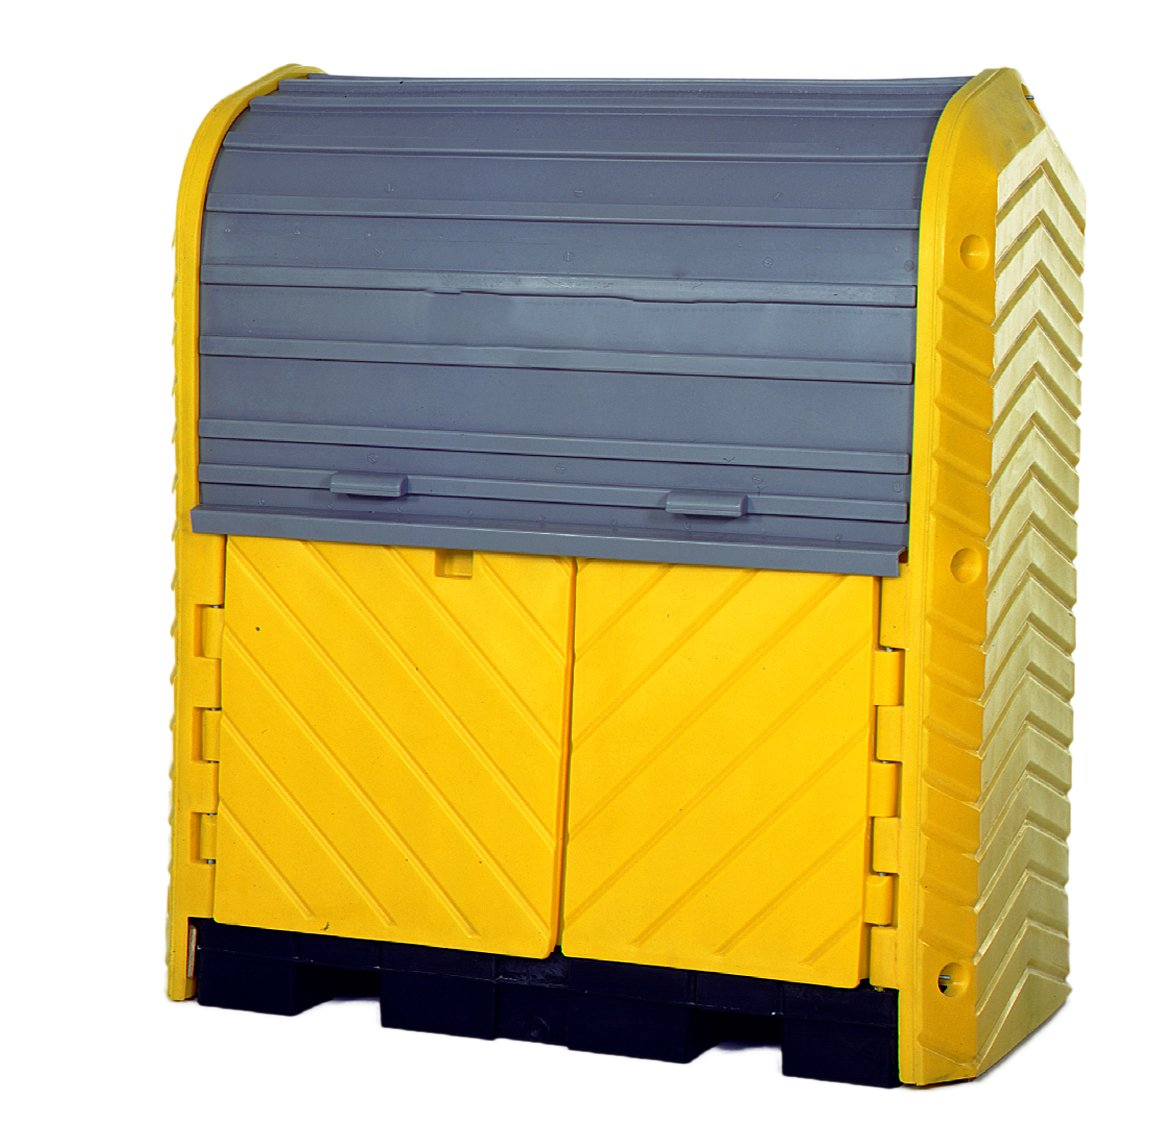 UltraTech 9613 up to two drums, 66 gallon capacity, with drain